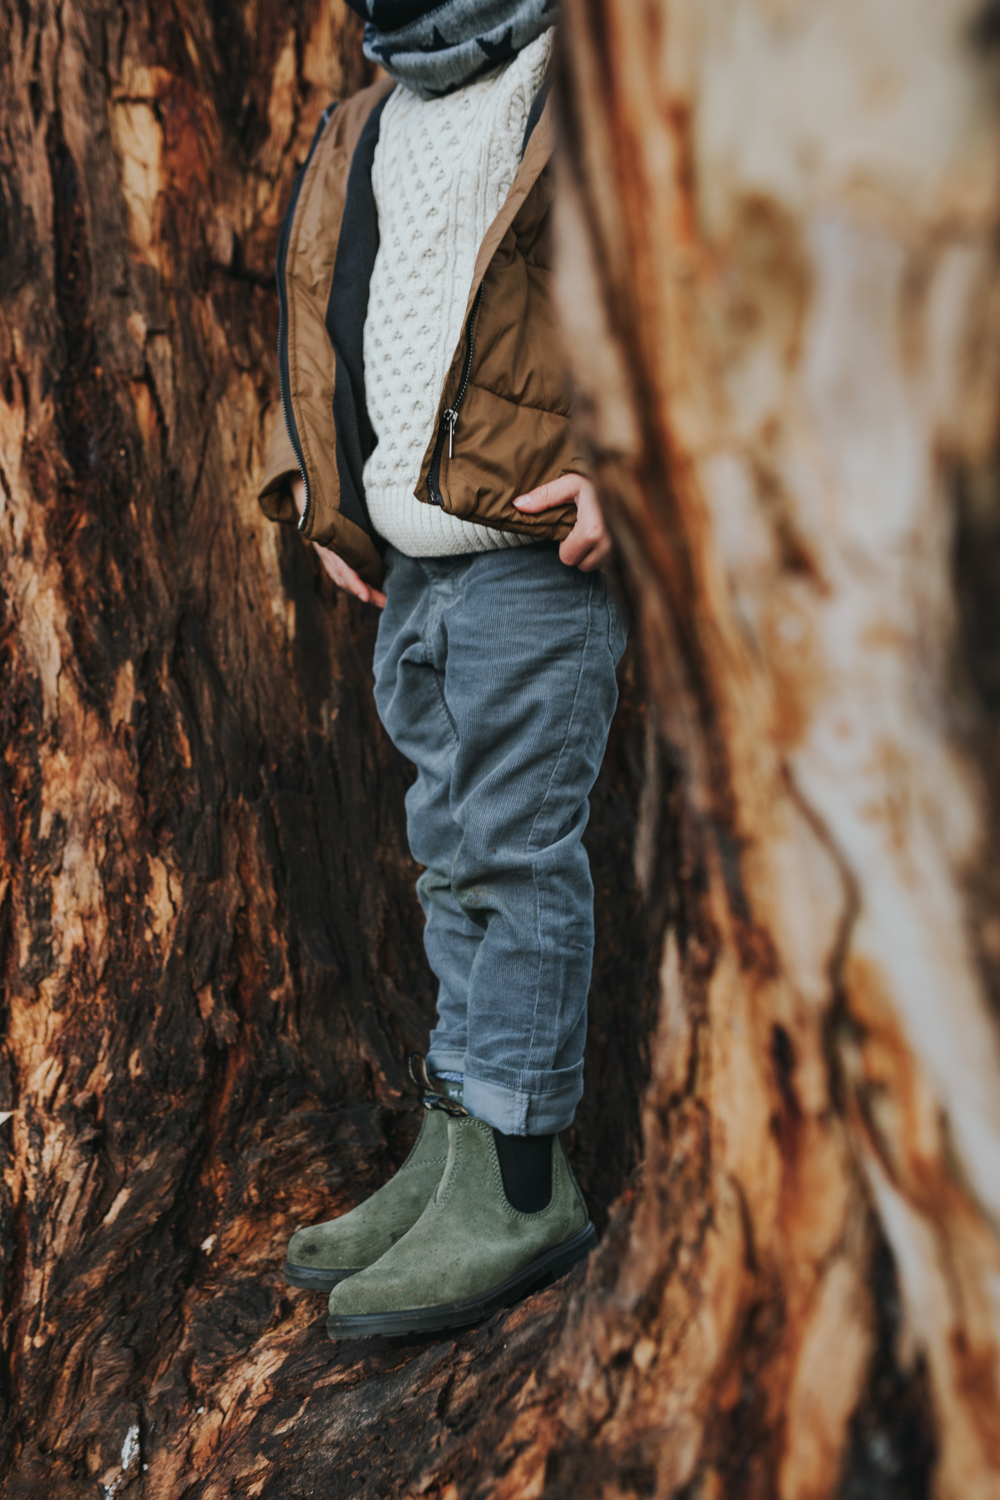 Young boy stands in a tree with dirty knees wearing Blundstone boots and winter clothing.